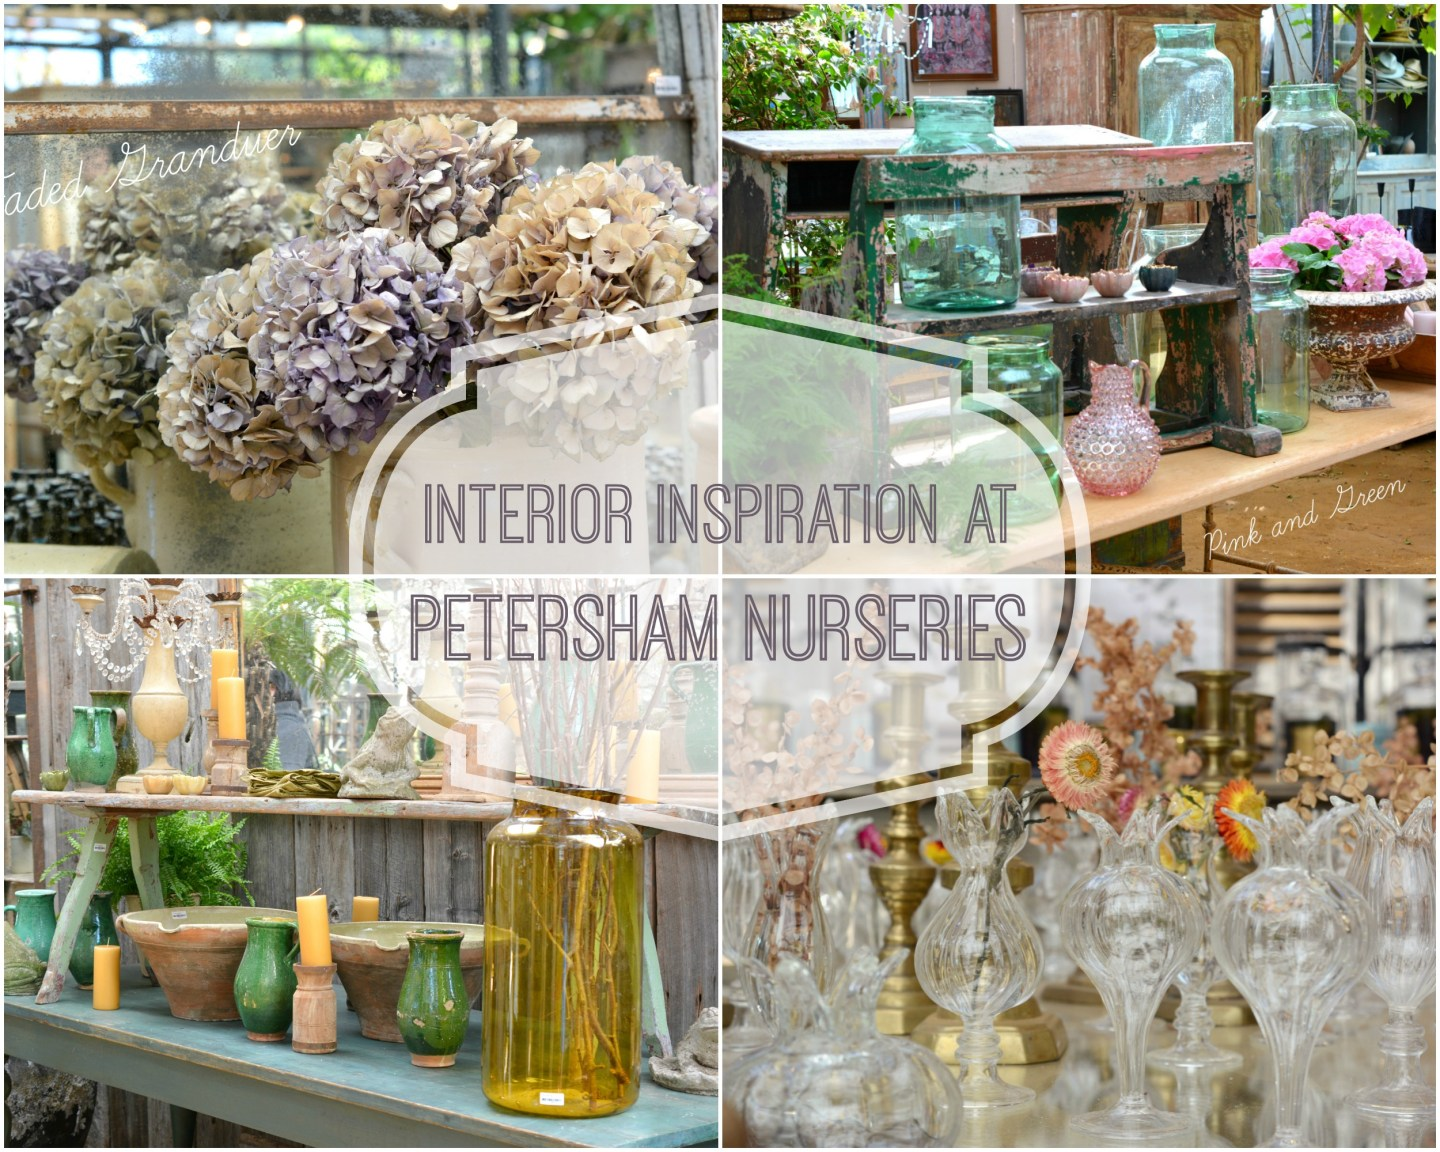 HOME – Interior Inspiration at Petersham Nurseries